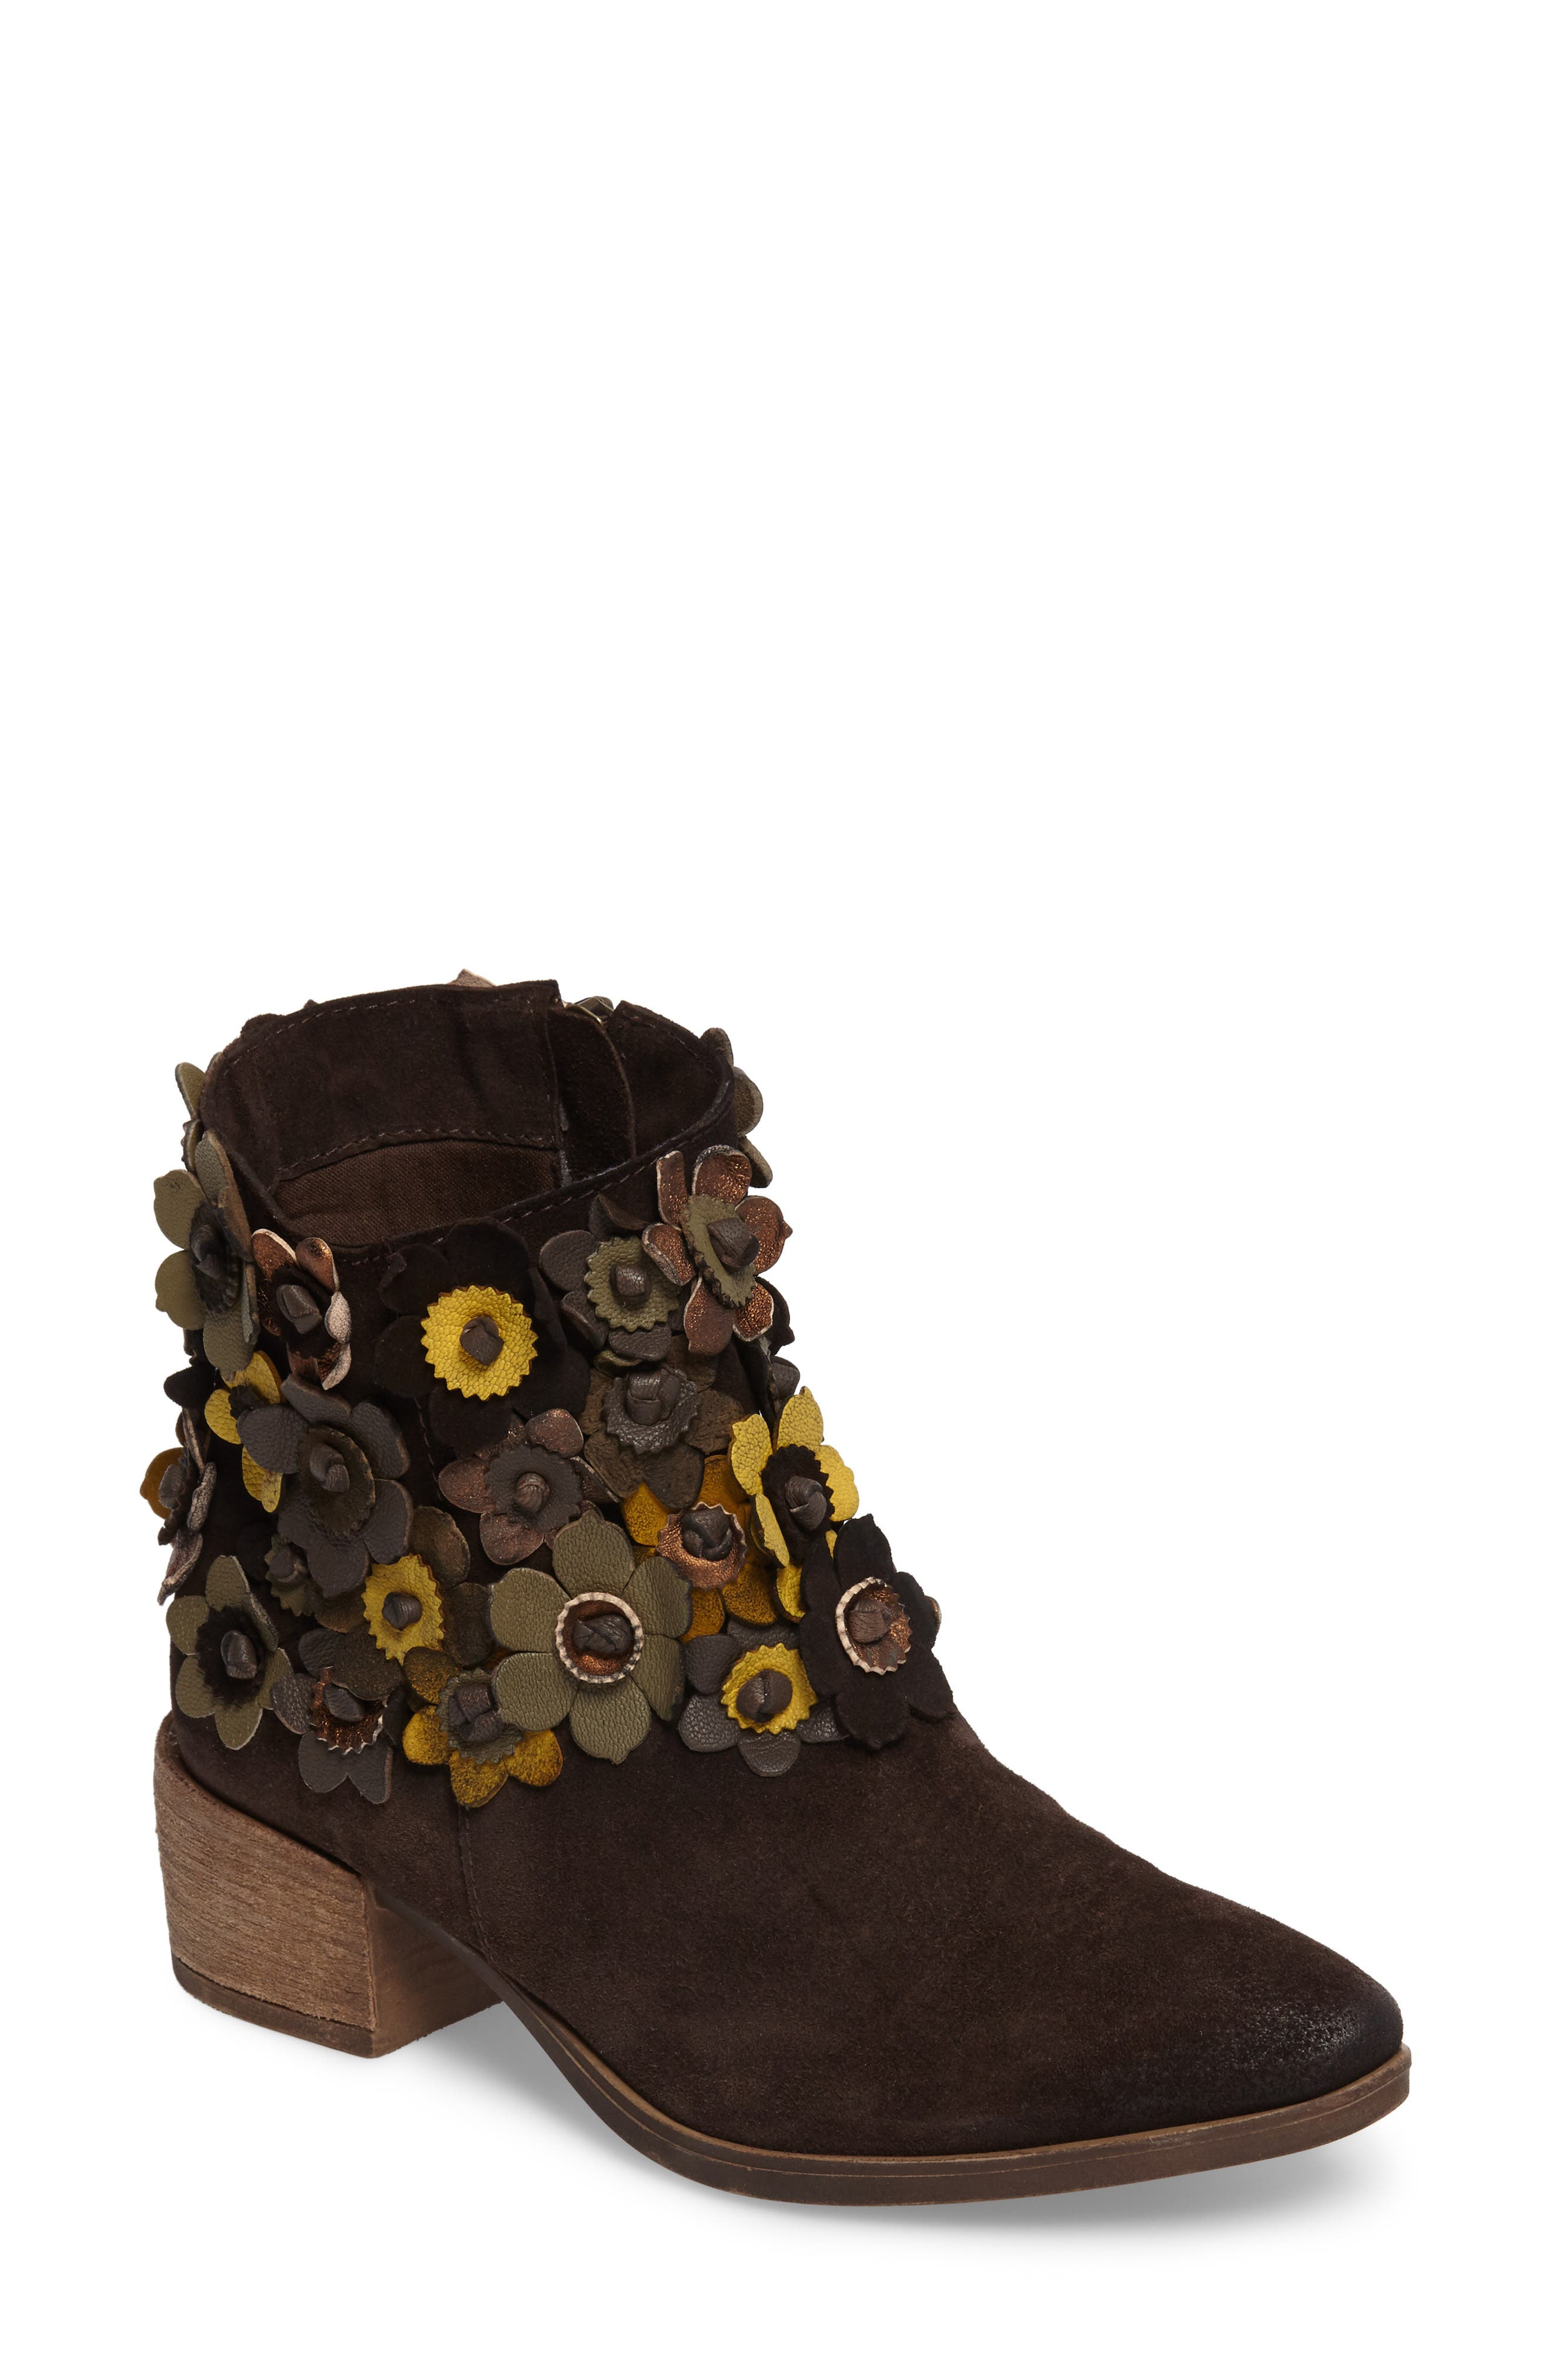 Sunflower Embellished Bootie,                             Main thumbnail 1, color,                             BROWN SUEDE